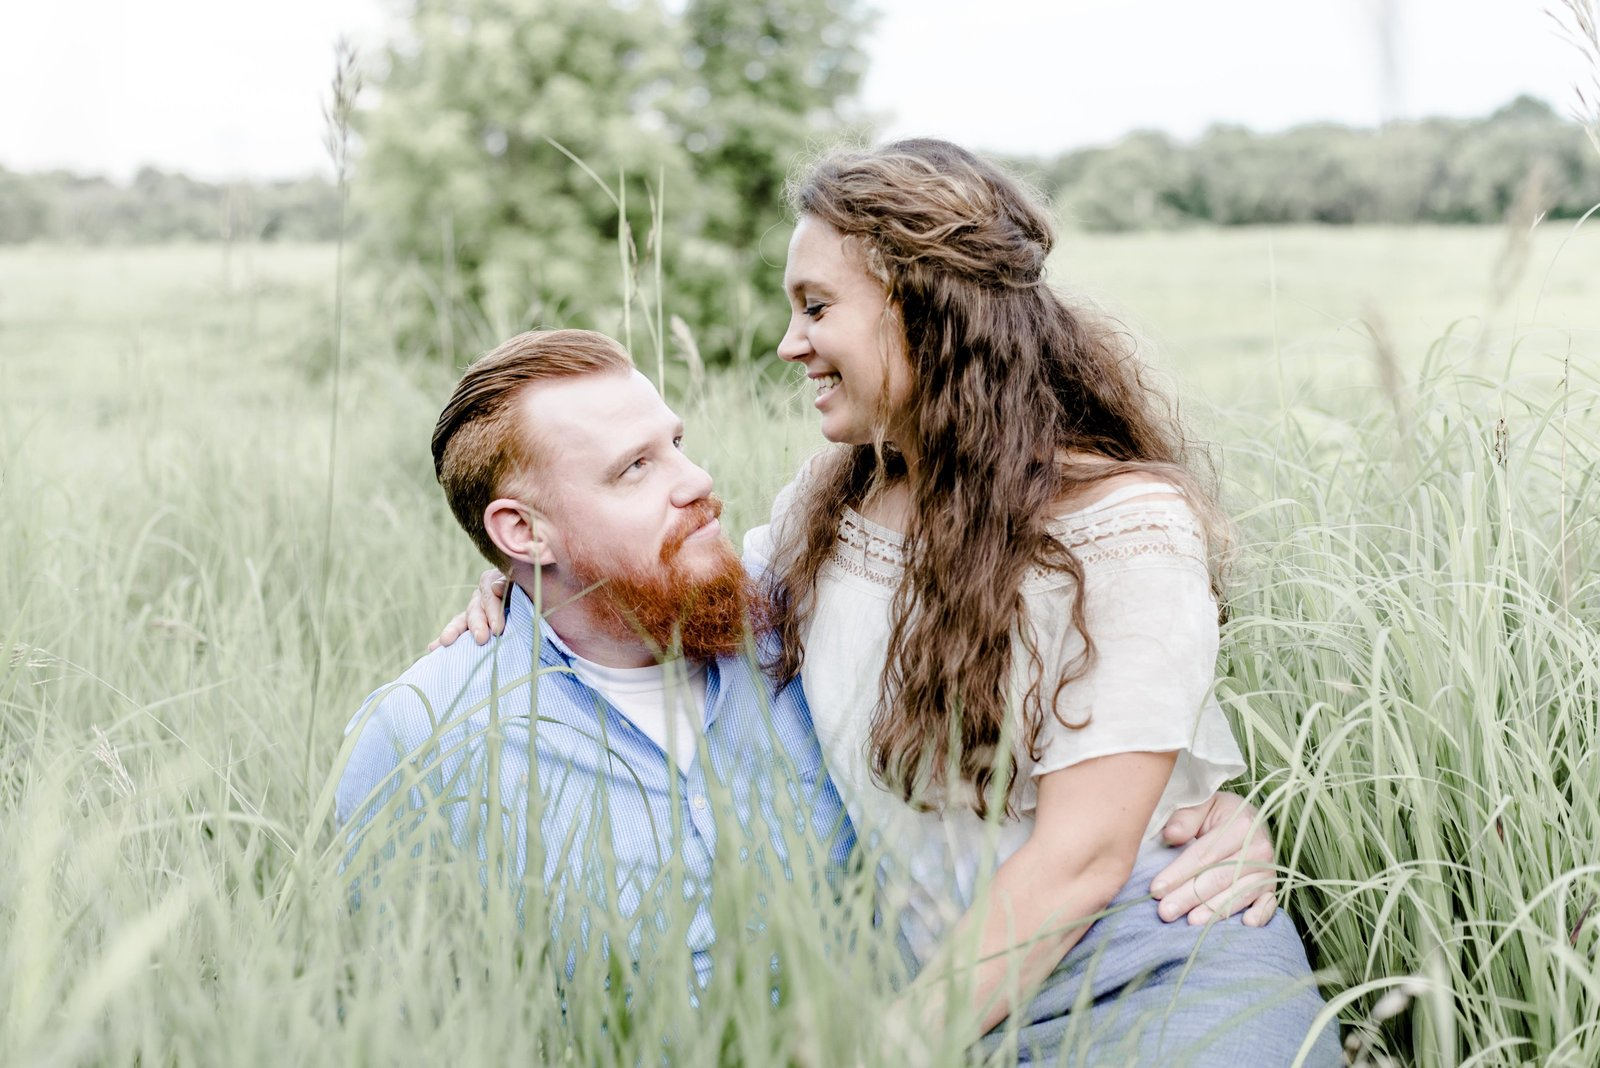 Cassidy_Alane_Photography-Jessica_&_Evan-SugarCreek_Metropark-Ohio_Engagement_Photographer-03